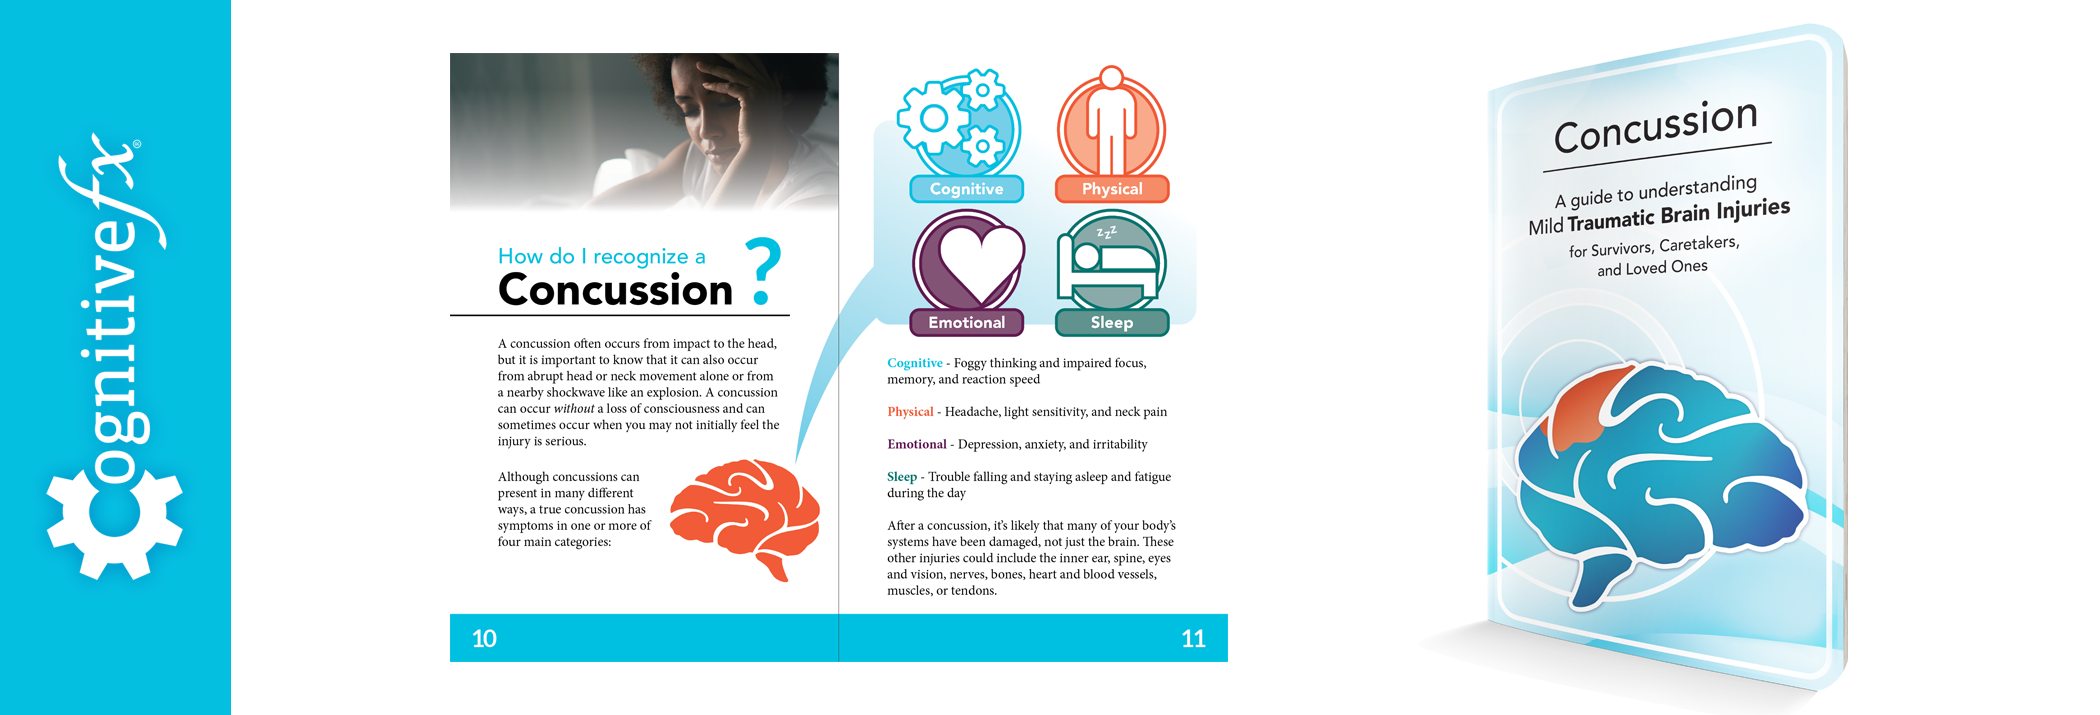 New Concussion Guide Now Available